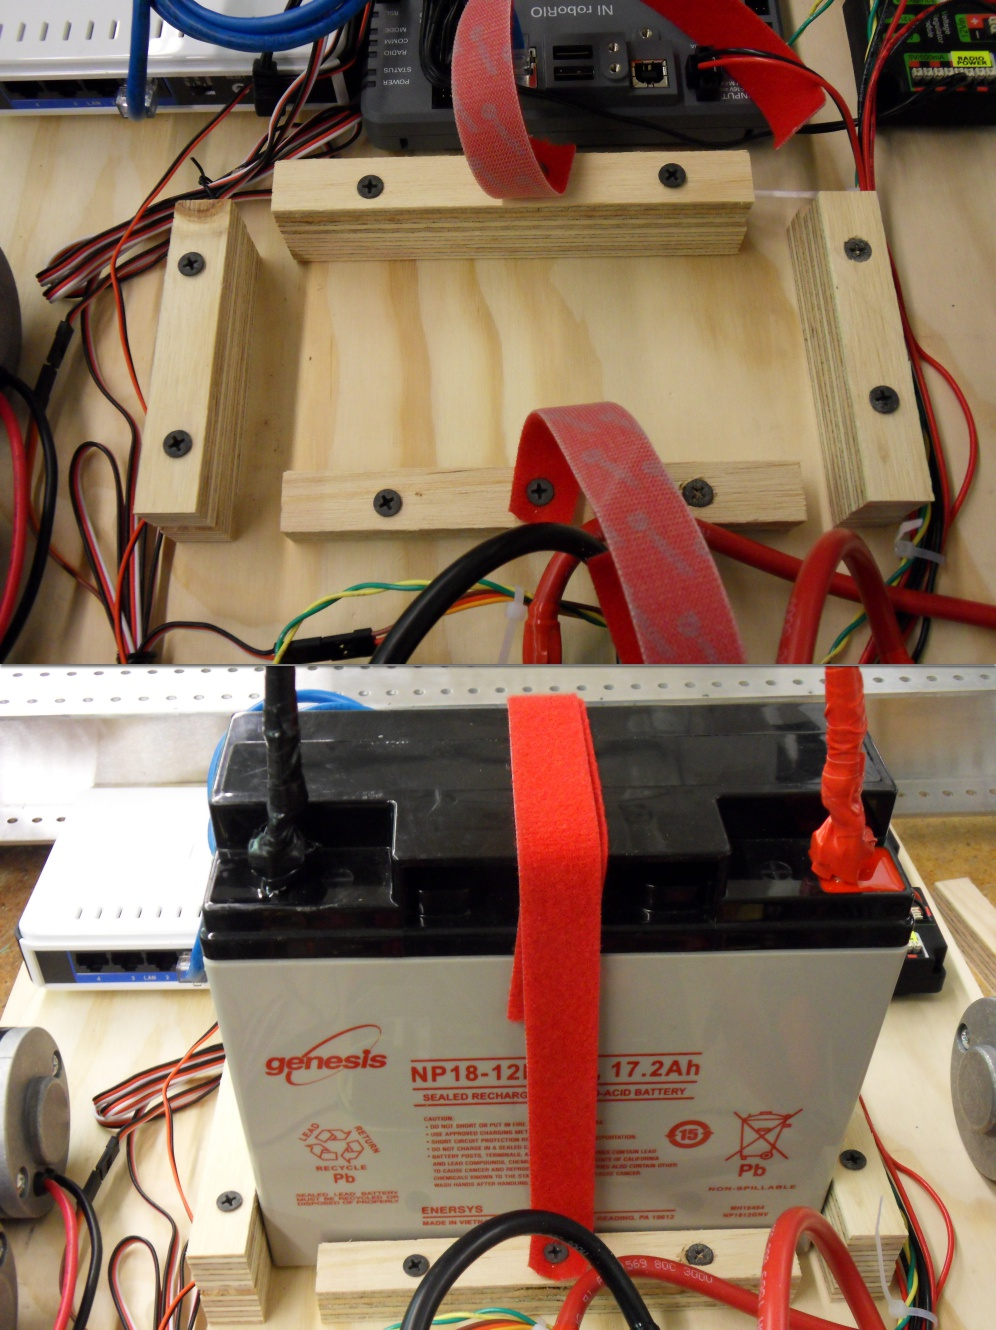 Wiring The Frc Control System Getting Started With Power Wheels Battery Harness Box